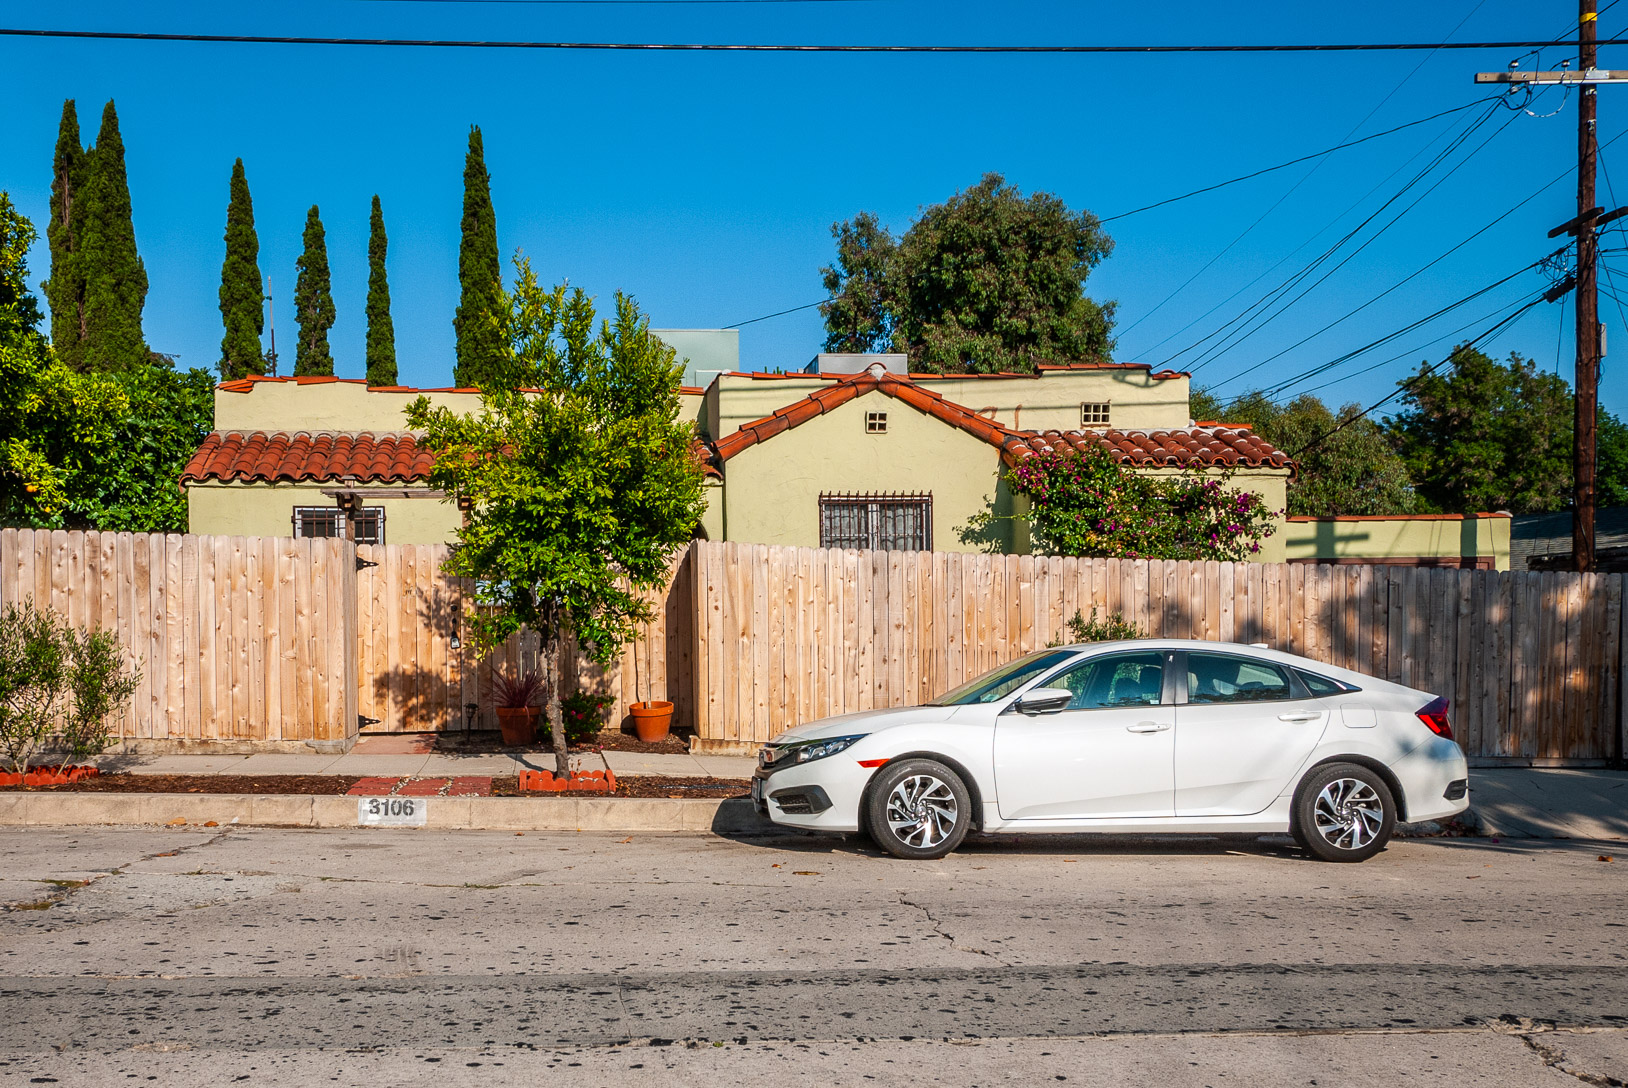 Spanish duplex, 1/1 with glorious yard, new appliances and a washer/dryer, two car garage!